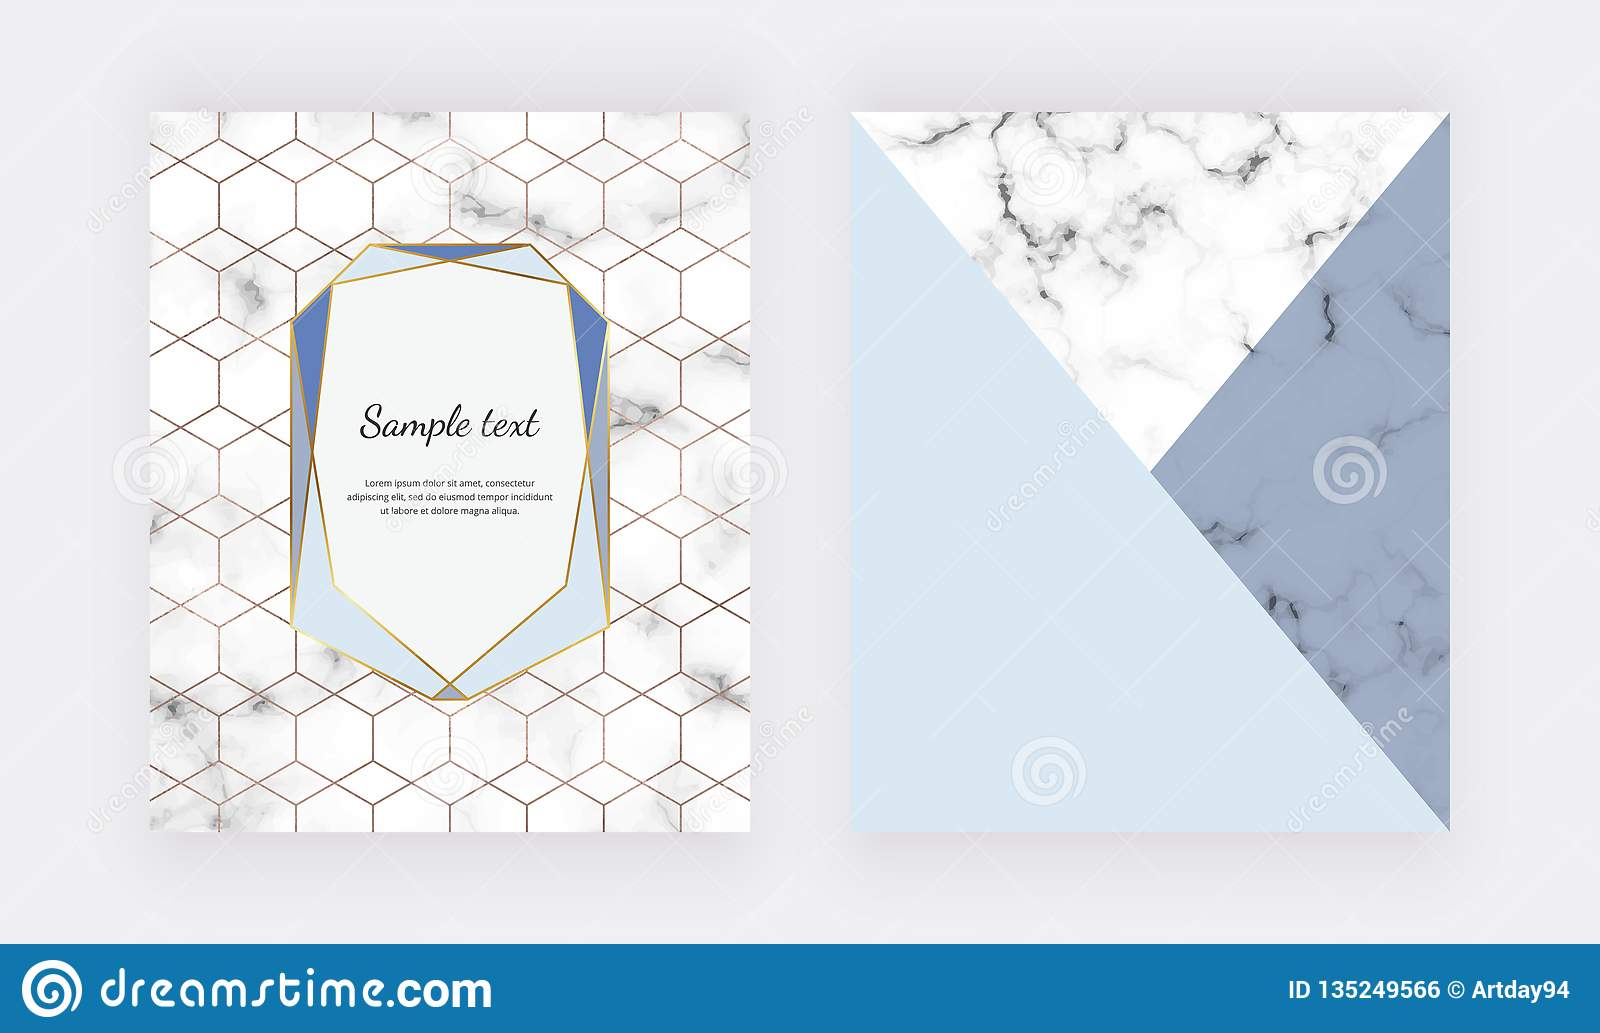 Marble Geometric Design With Blue Triangular Foil Textures Modern